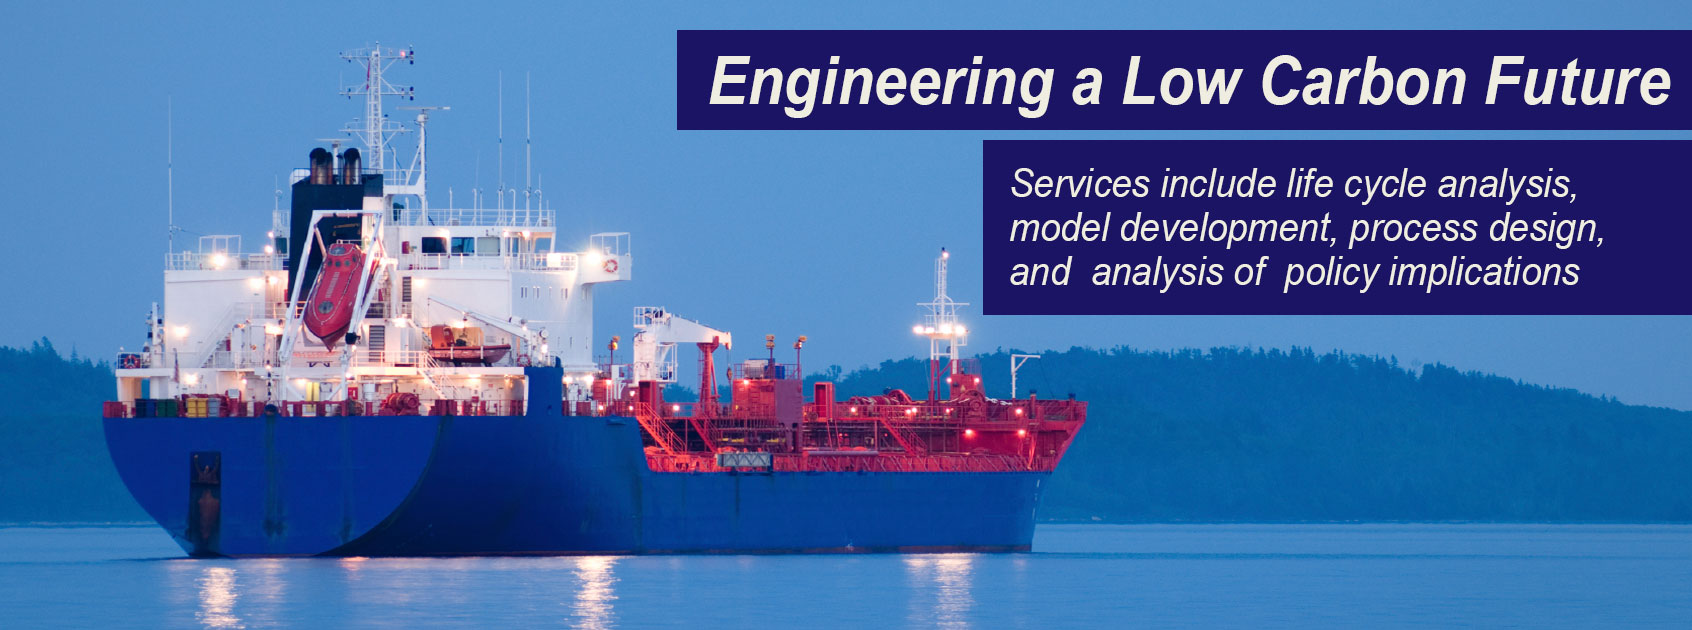 <a href='http://www.lifecycleassociates.com/2011/08/01/engineering-carbon-future-ocean-tanker/'></a>